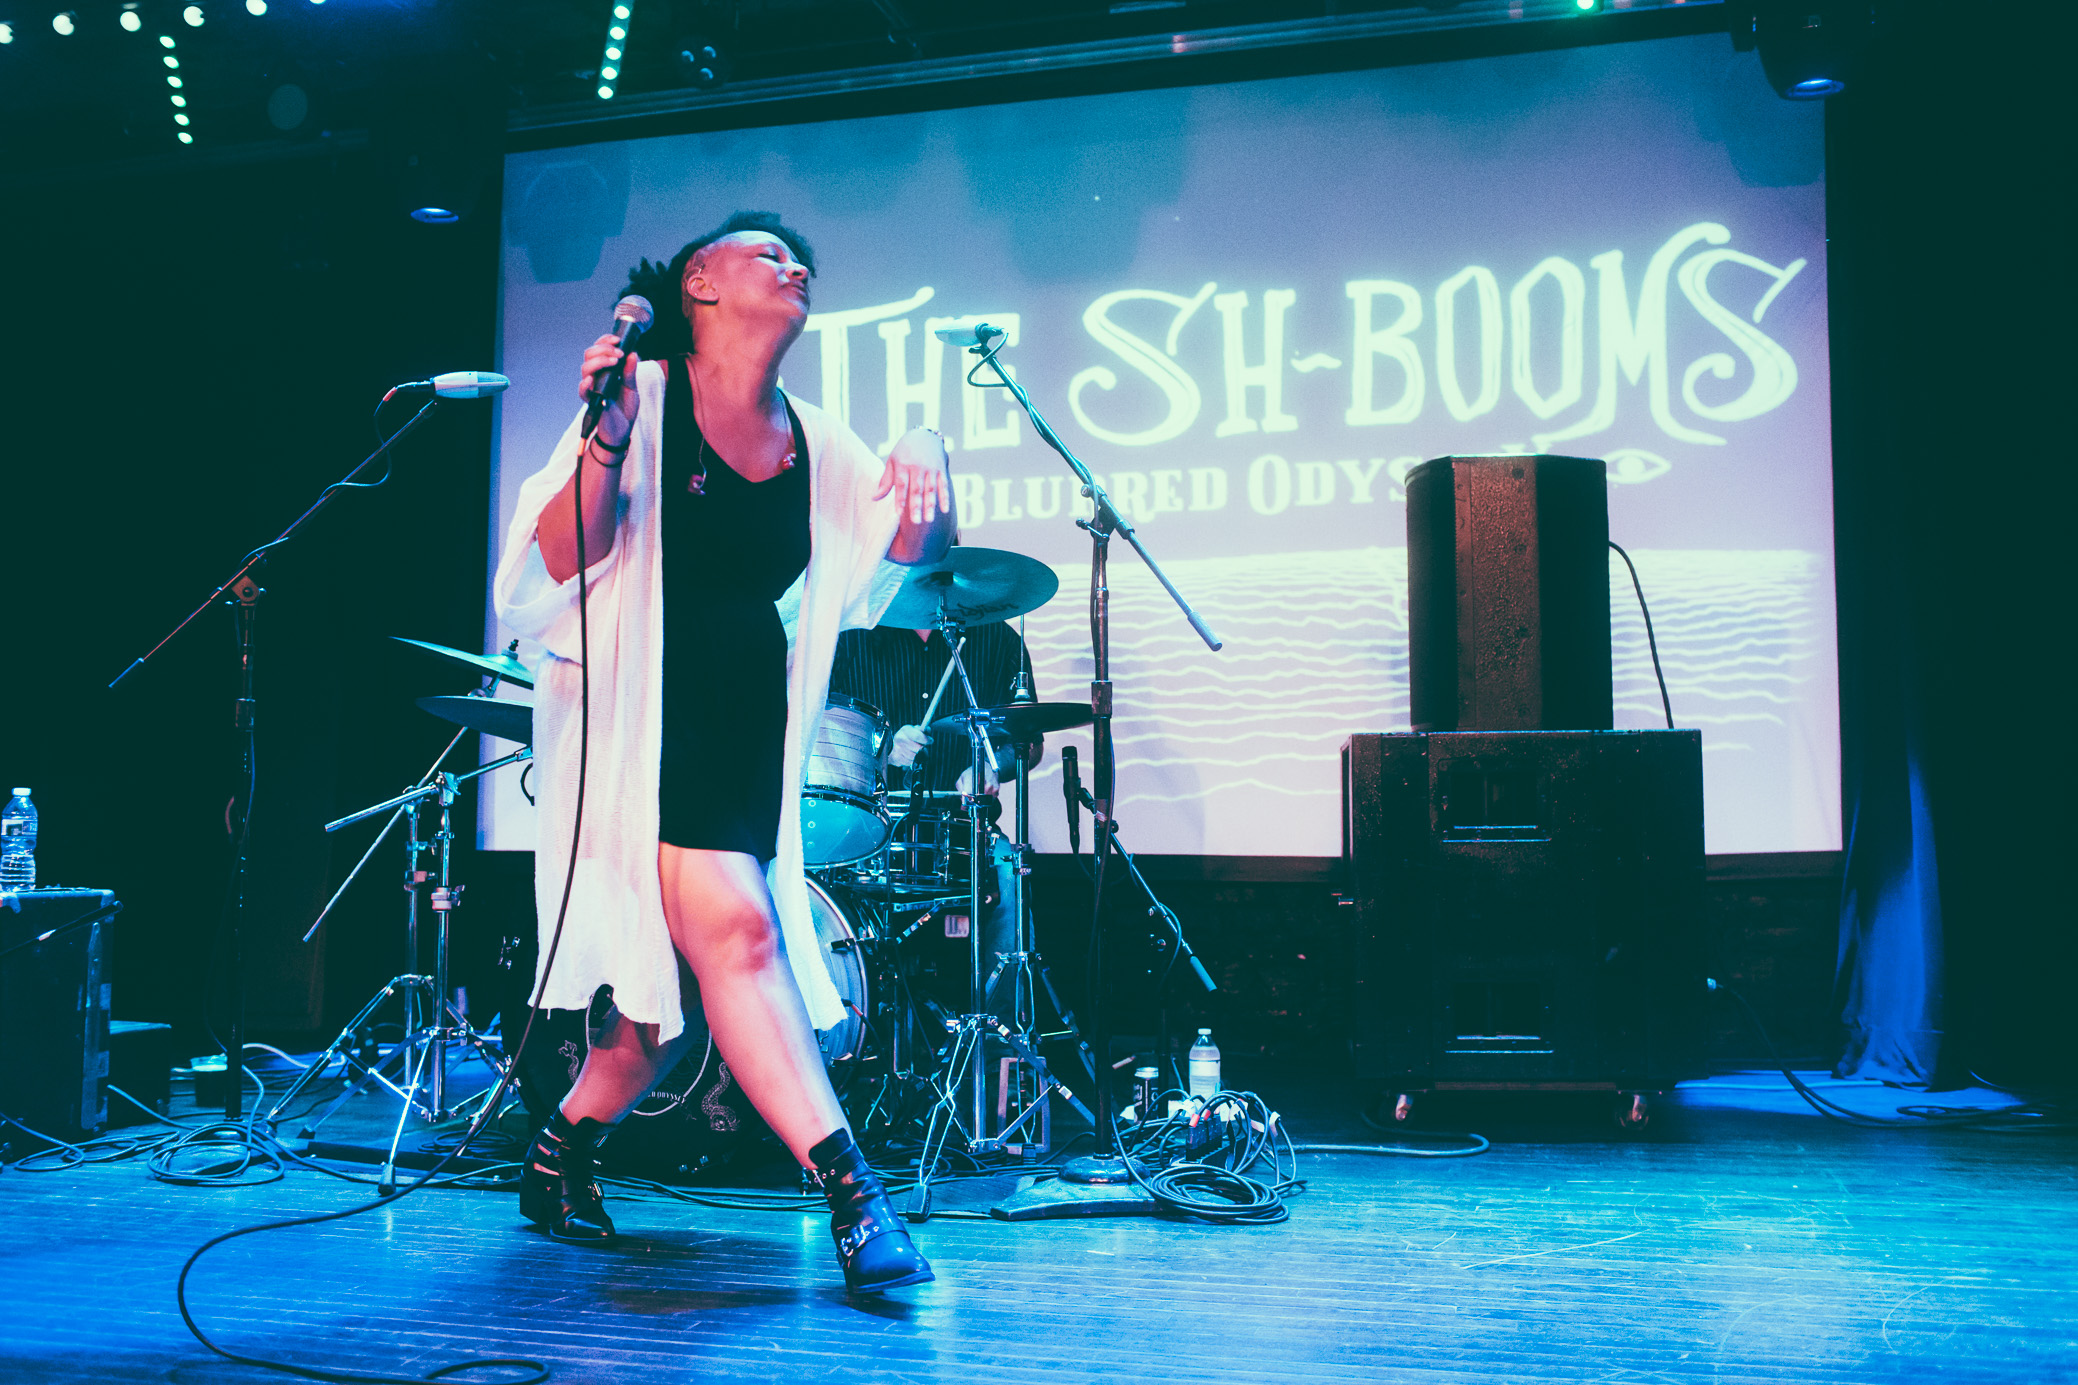 The Sh-Booms perform in concert at Saturn Birmingham in Birmingham, Alabama on May 16th, 2019. (Photo by David A. Smith / DSmithScenes)